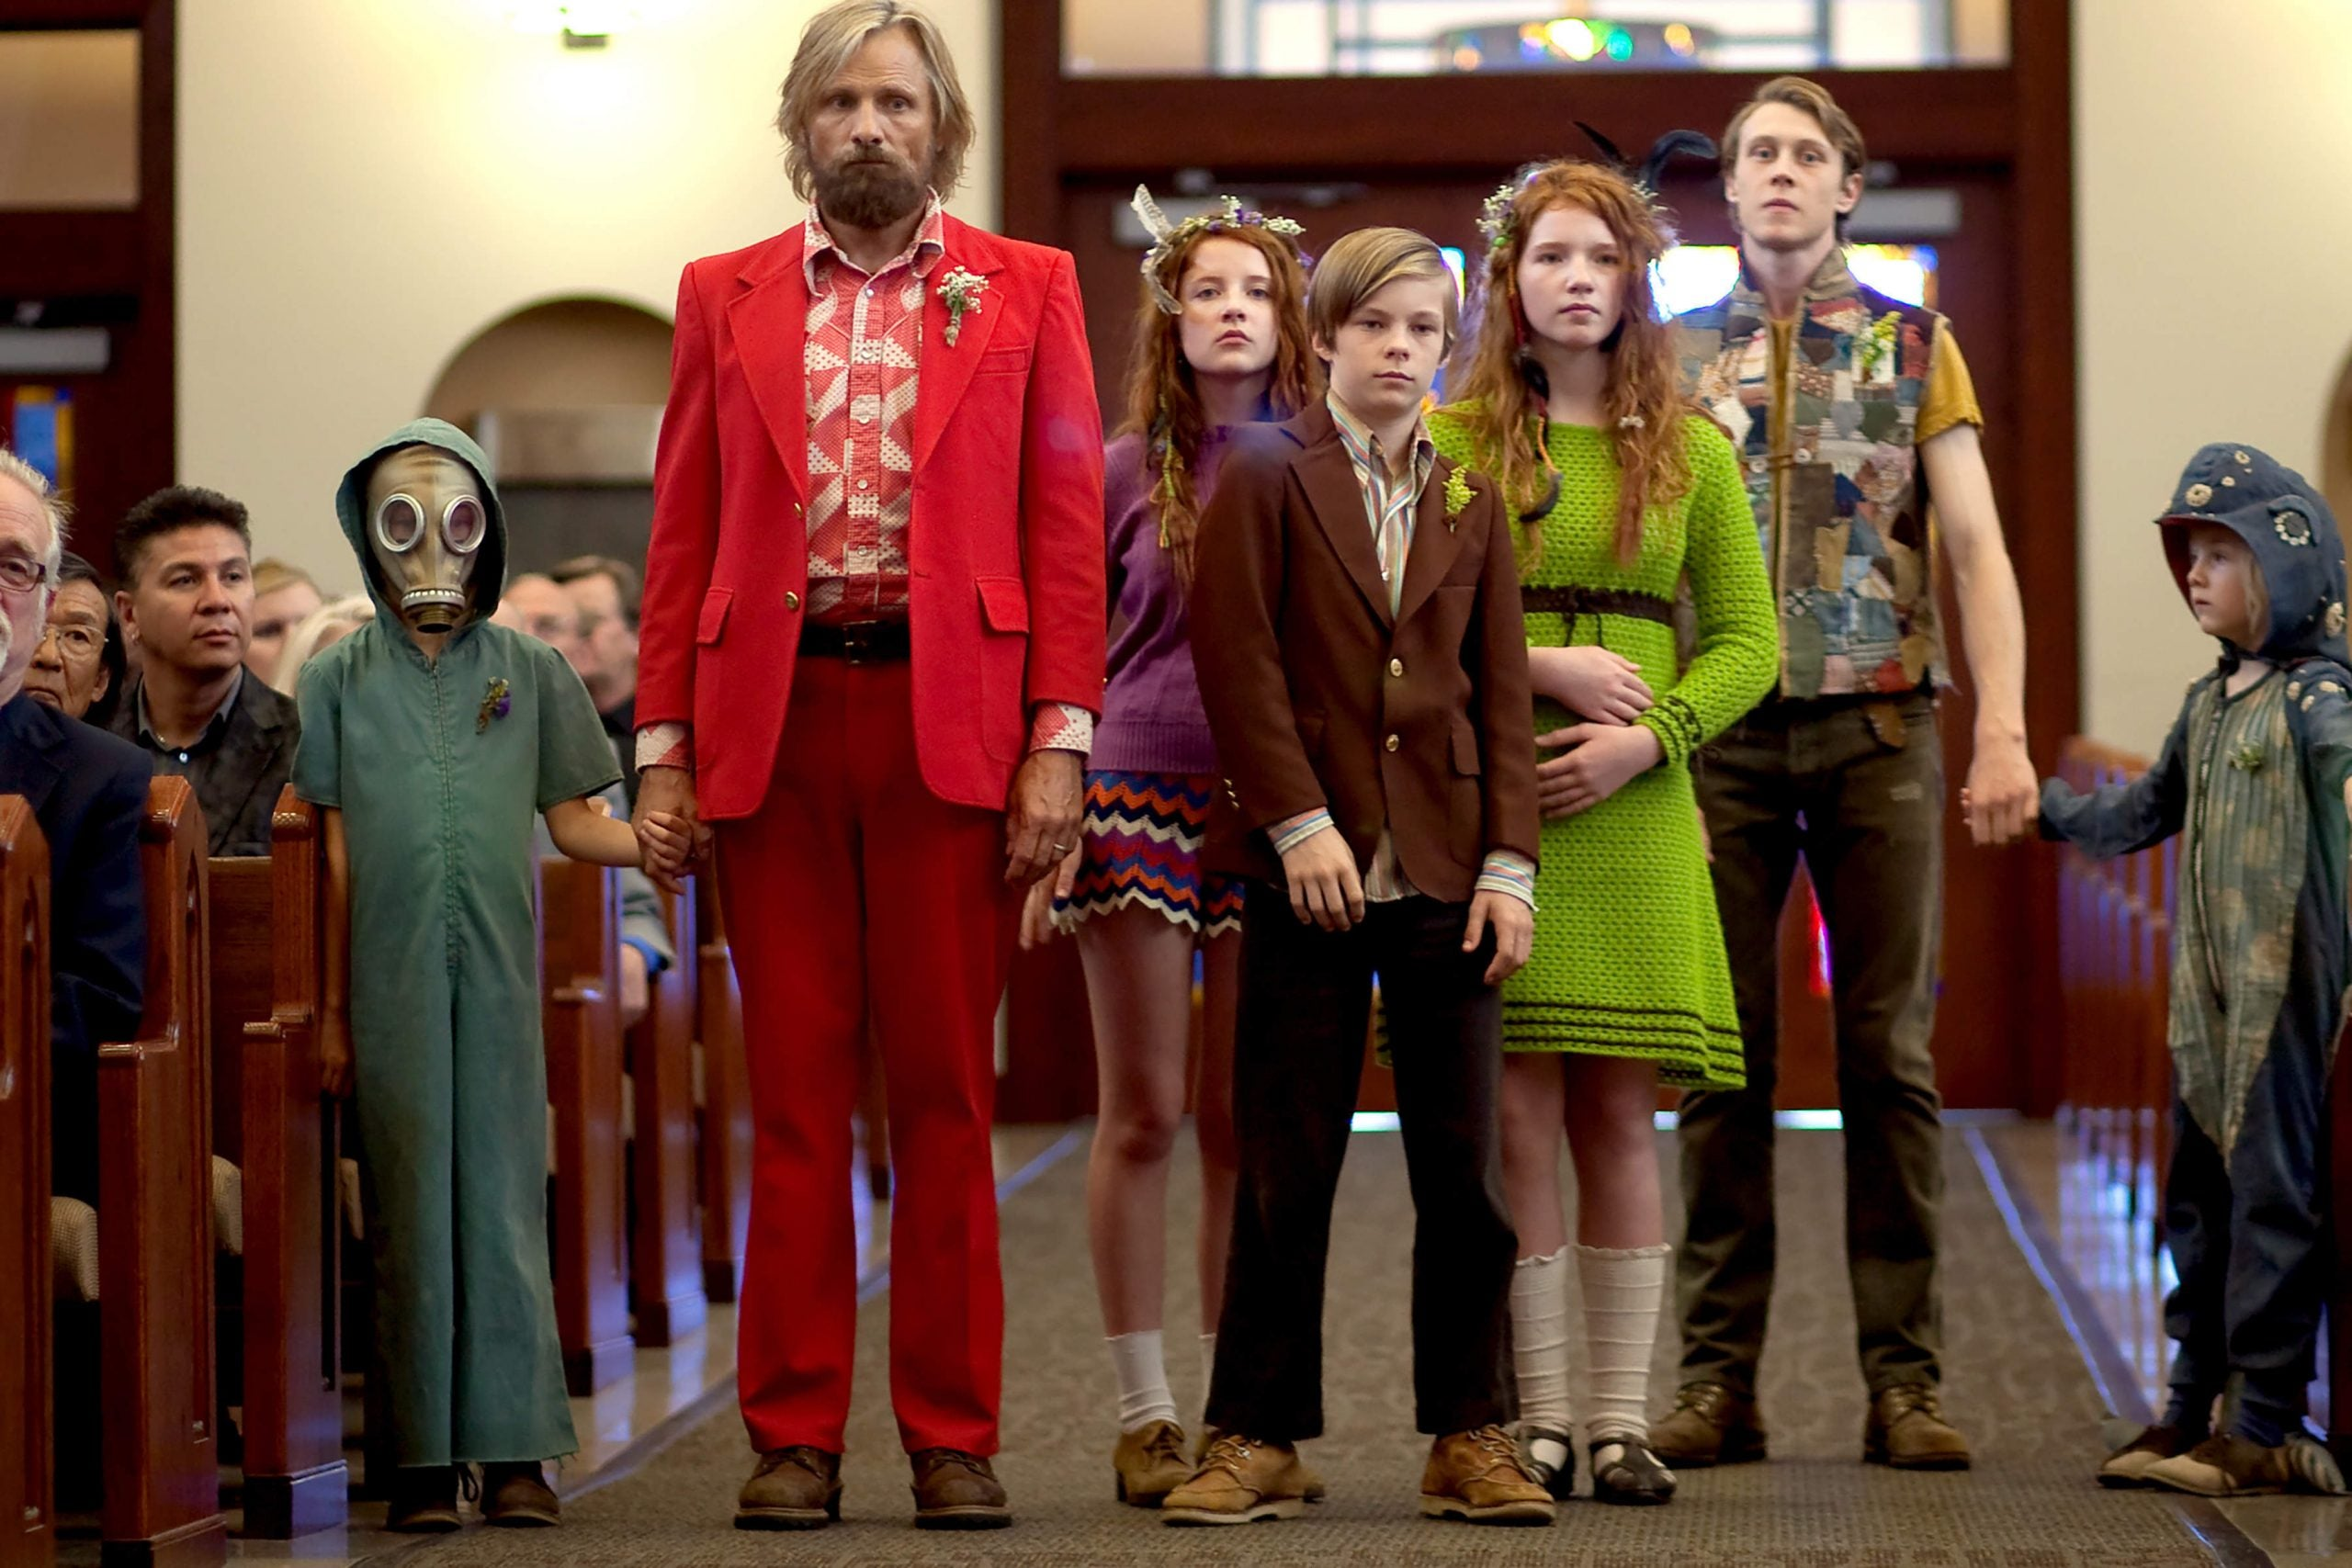 Captain Fantastic shows Matt Ross can't tell the difference between film-making and crowd-pleasing